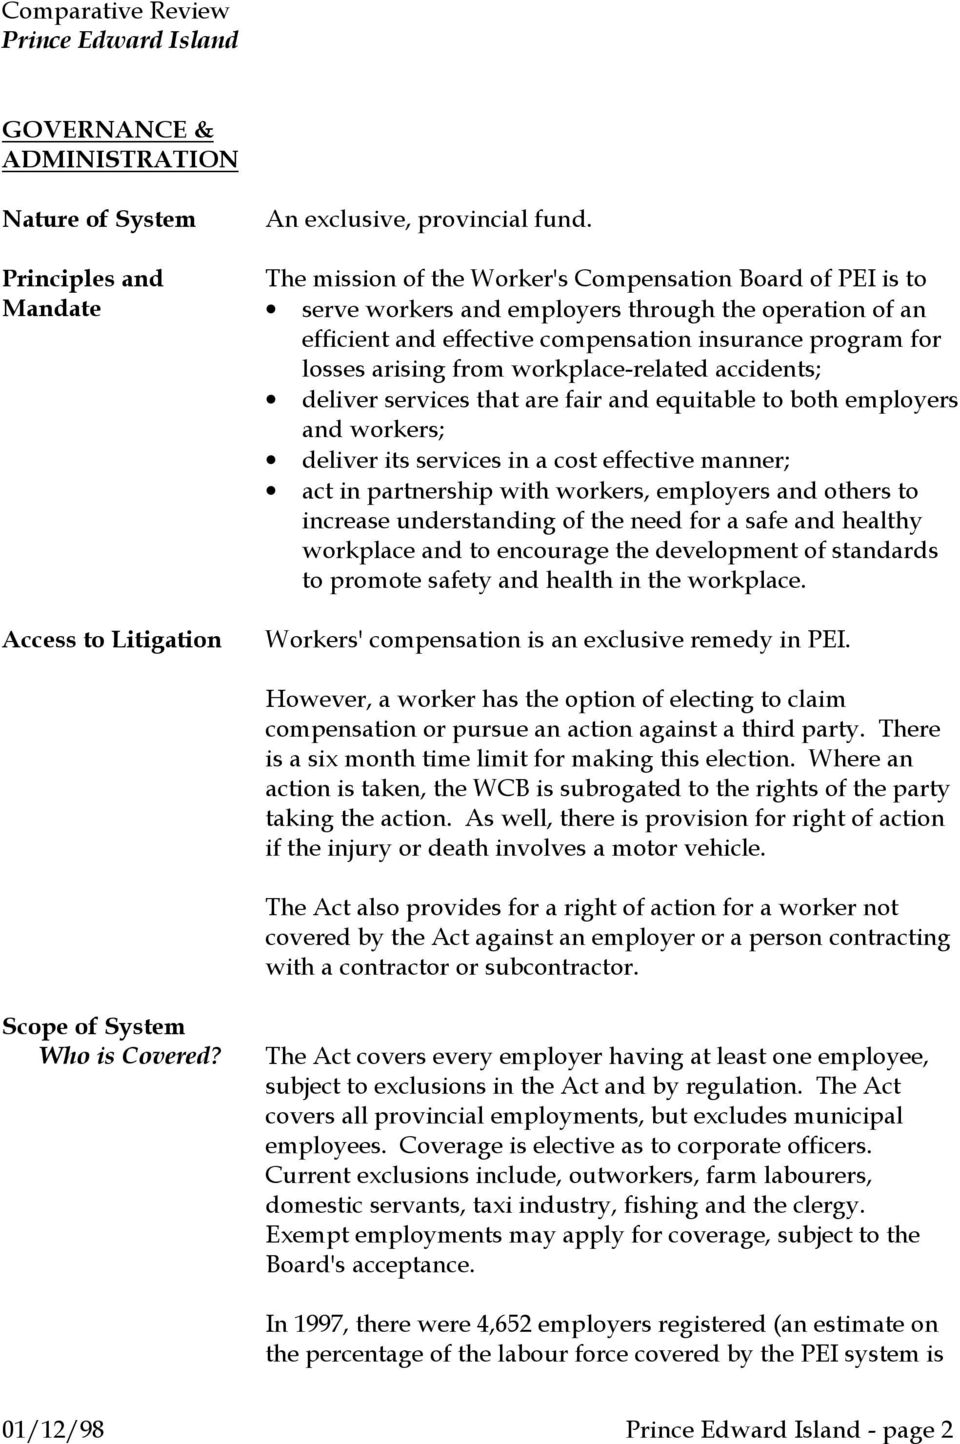 workplace-related accidents; deliver services that are fair and equitable to both employers and workers; deliver its services in a cost effective manner; act in partnership with workers, employers